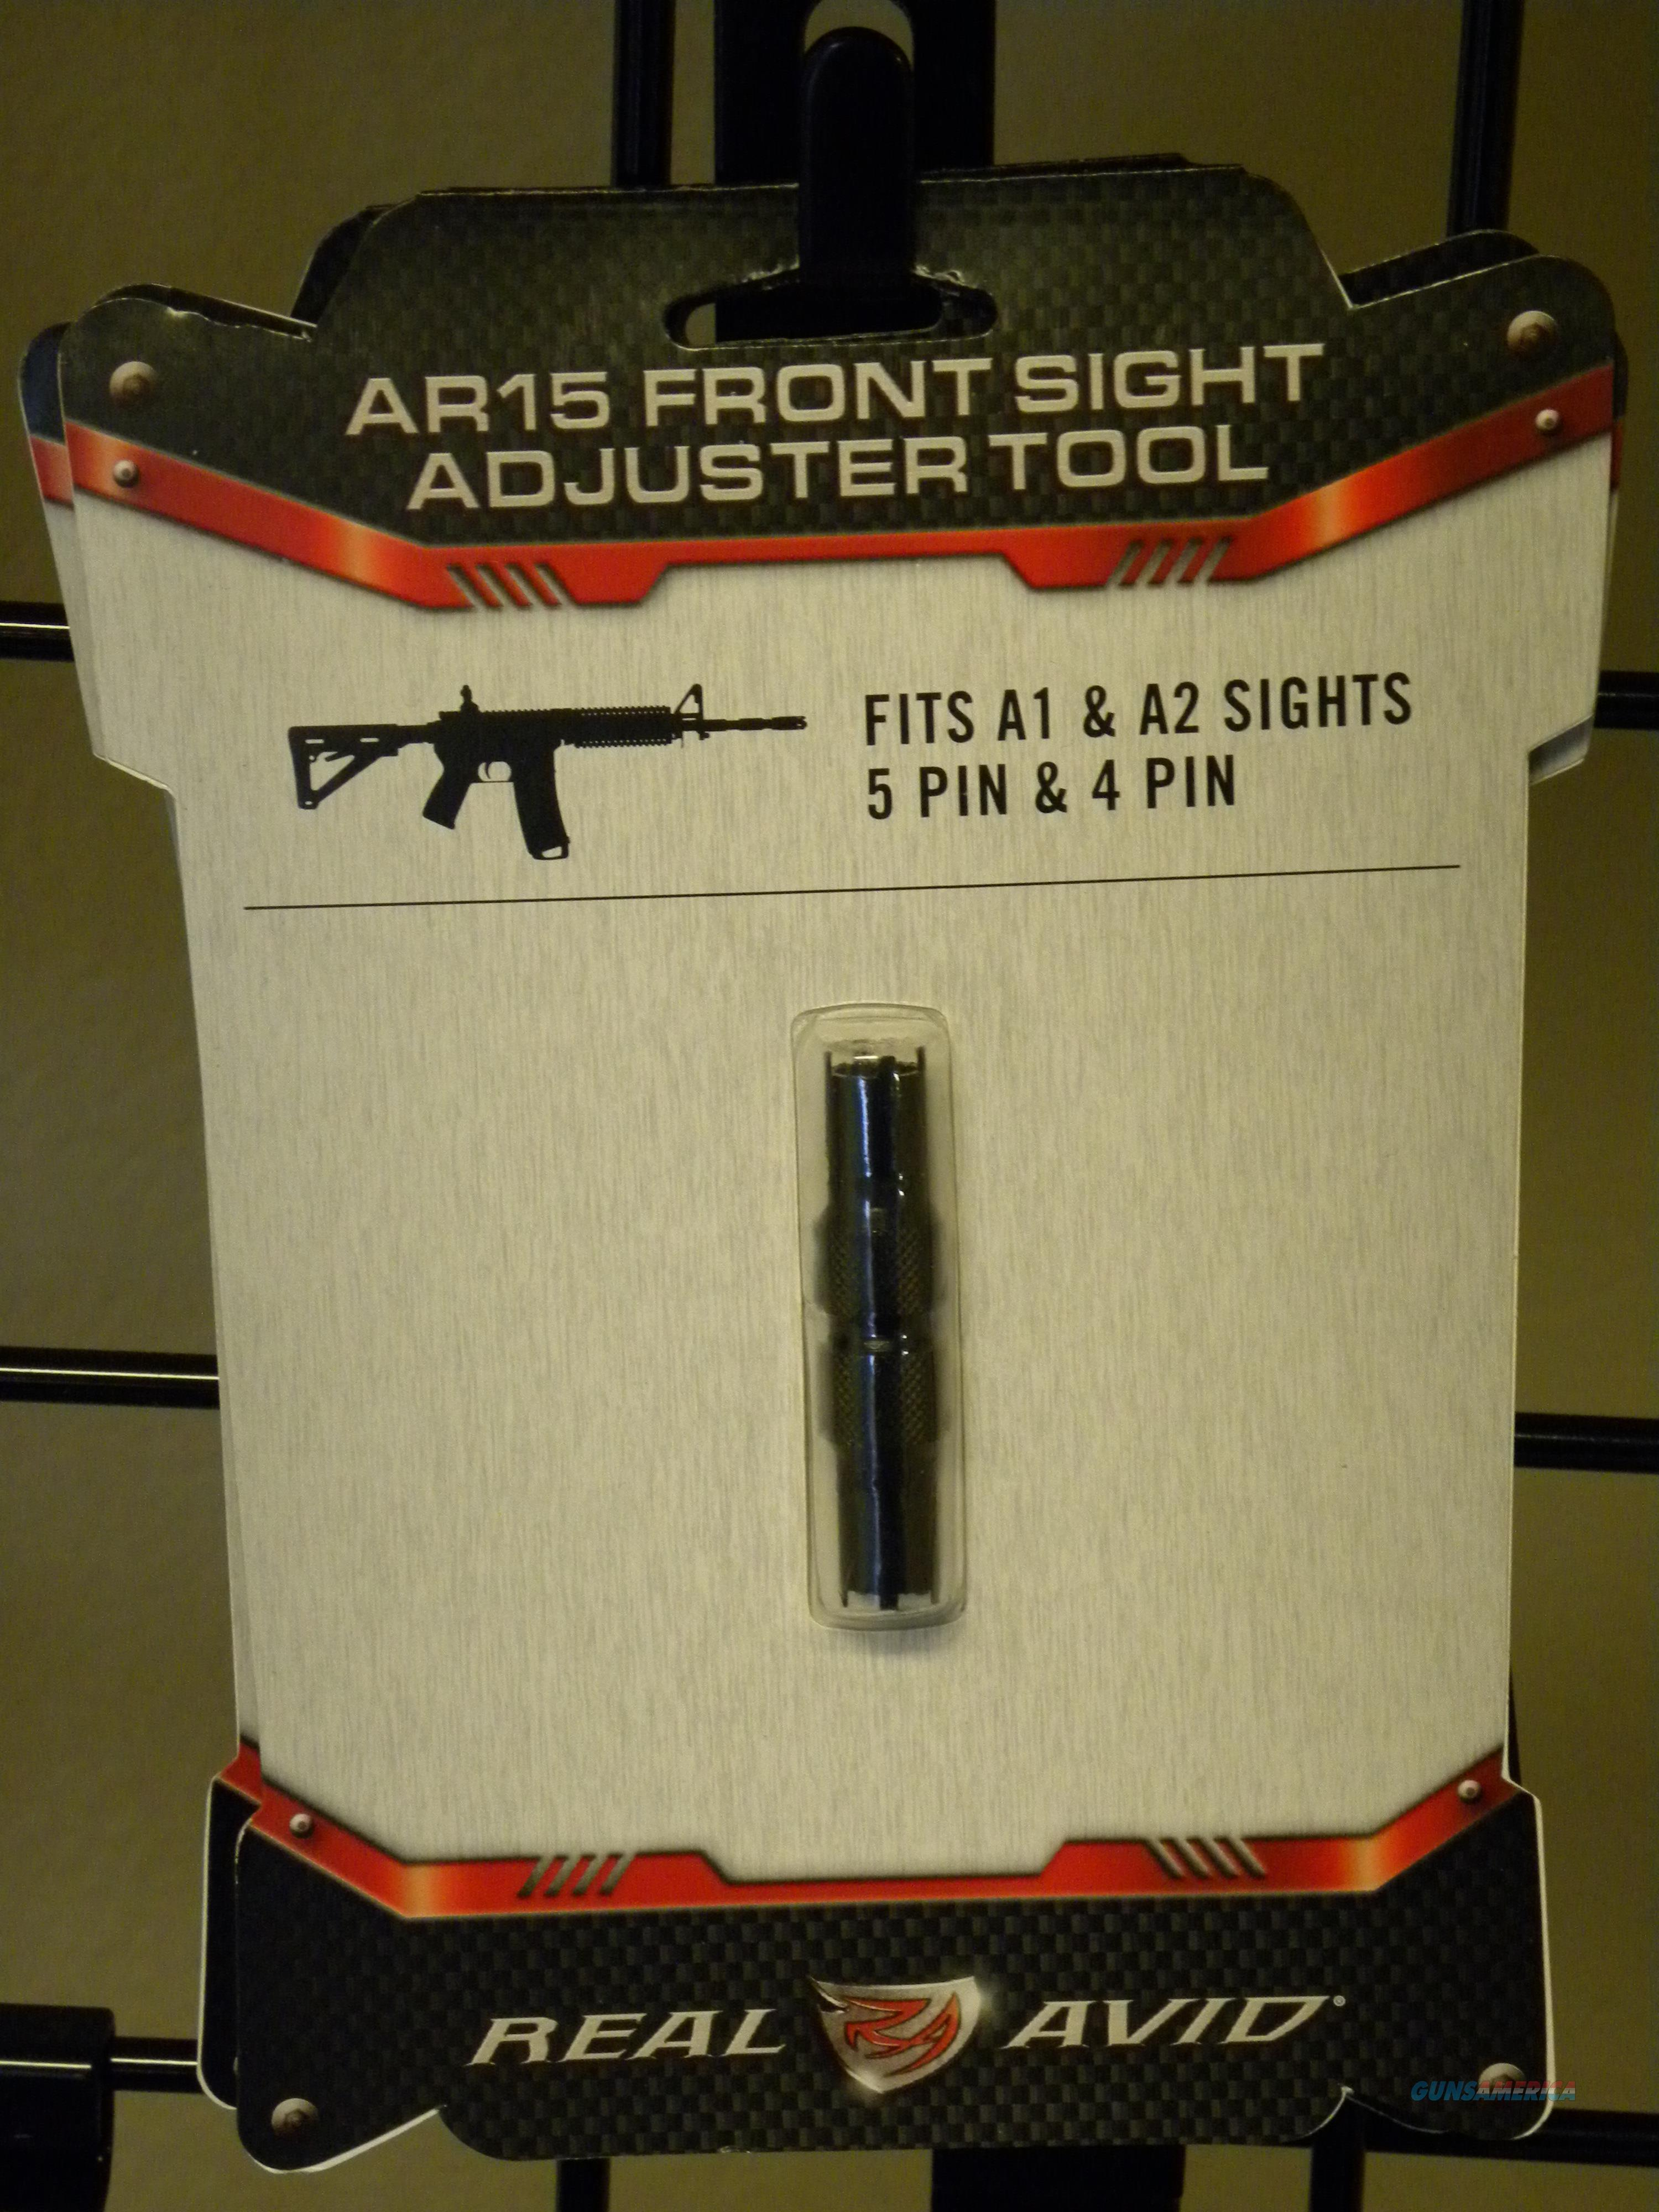 Real Avid AR15 Sight Adjustment Tool  Non-Guns > Gunsmith Tools/Supplies